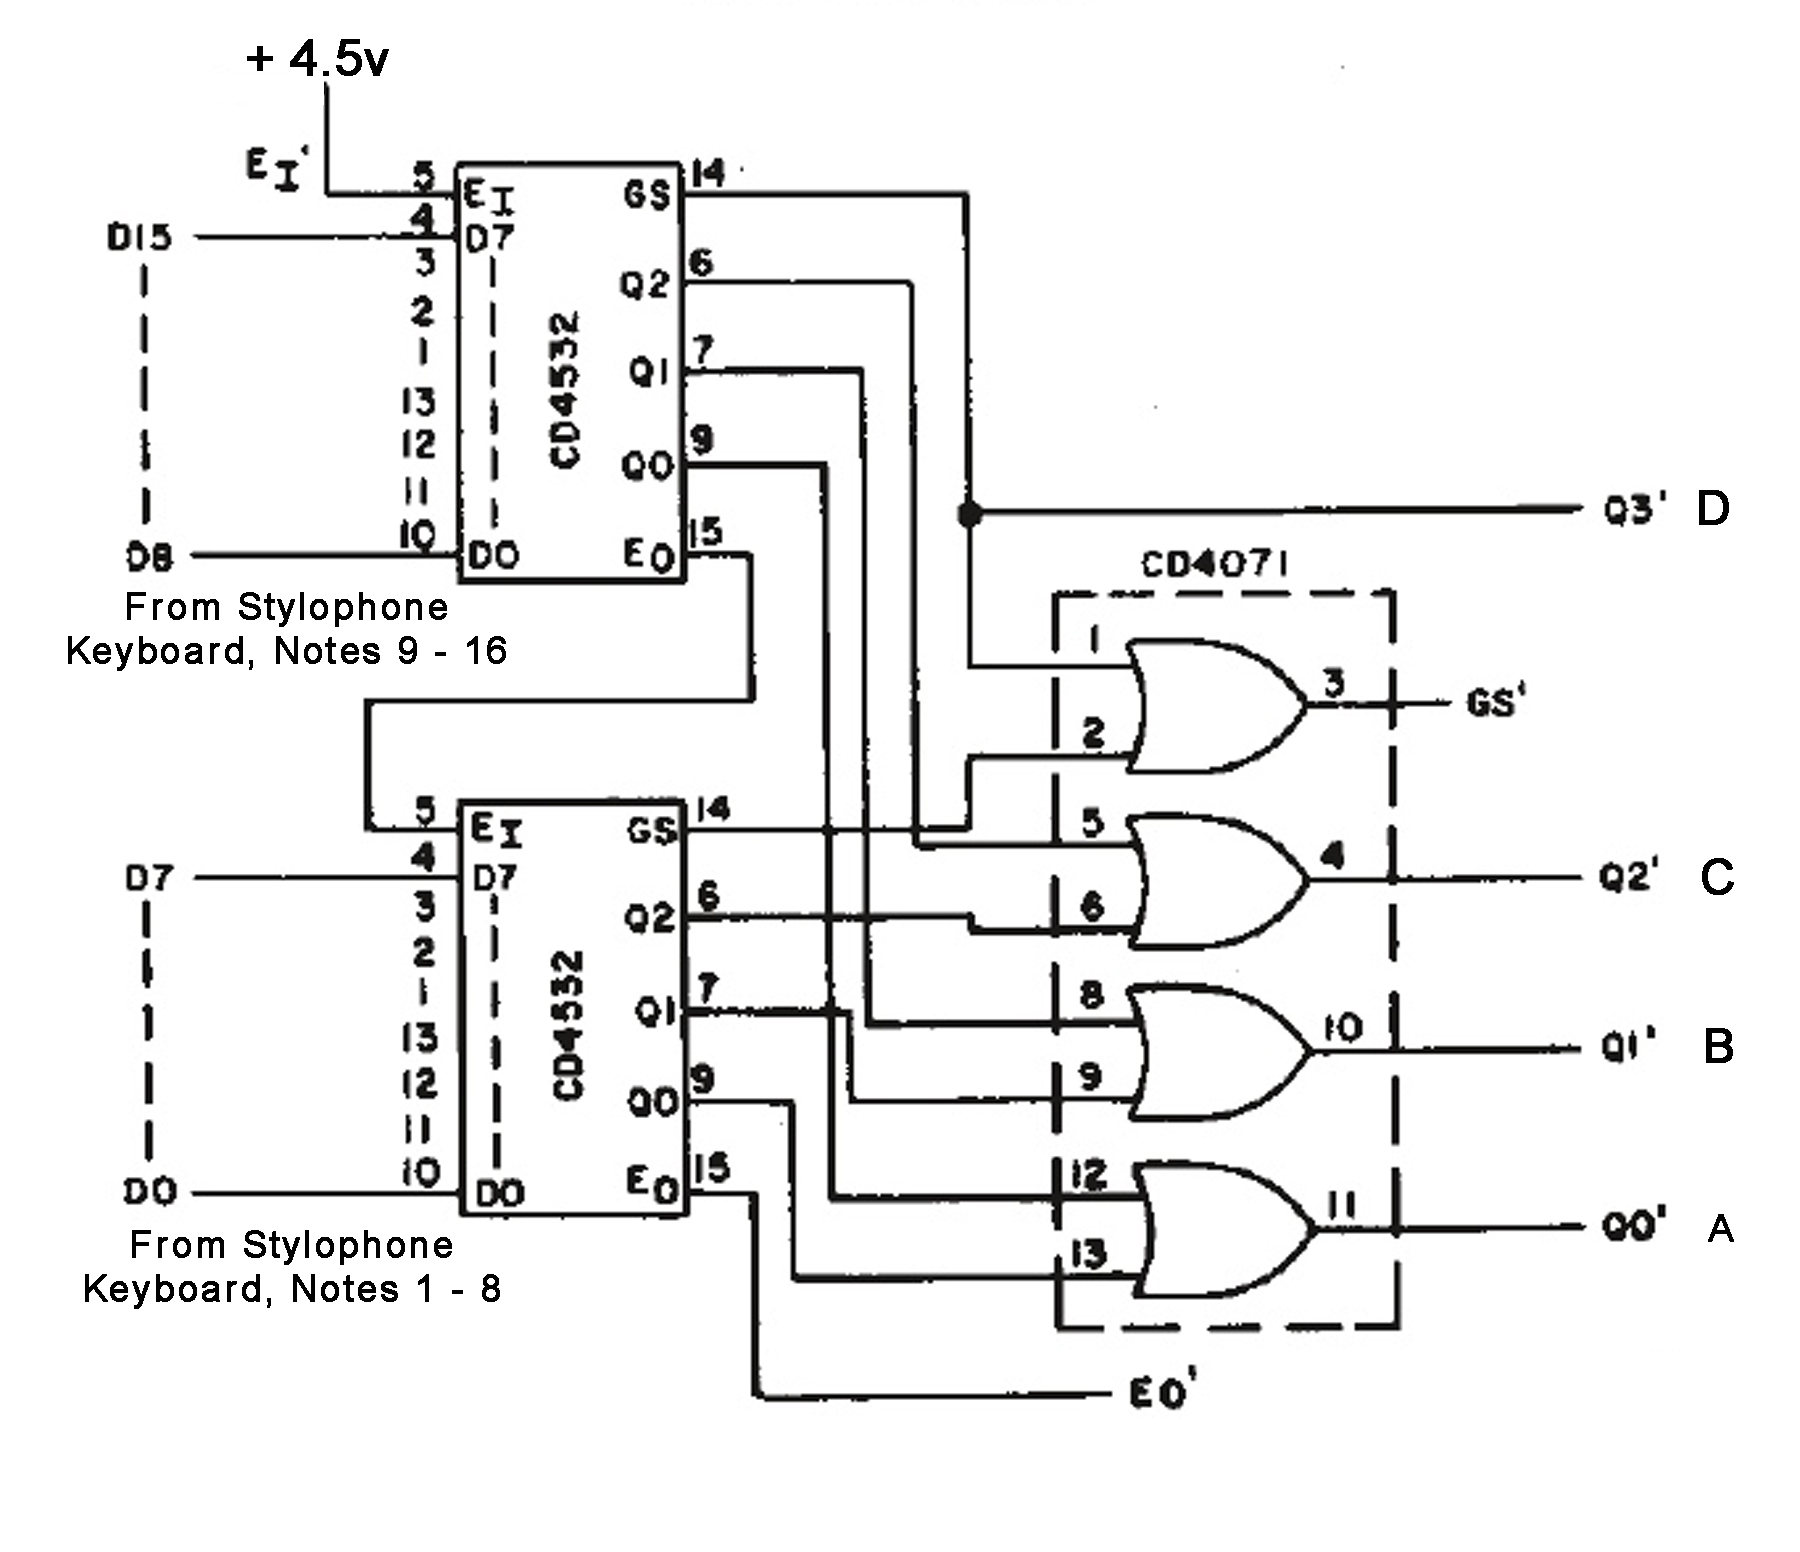 logic diagram of 8 to 3 encoder